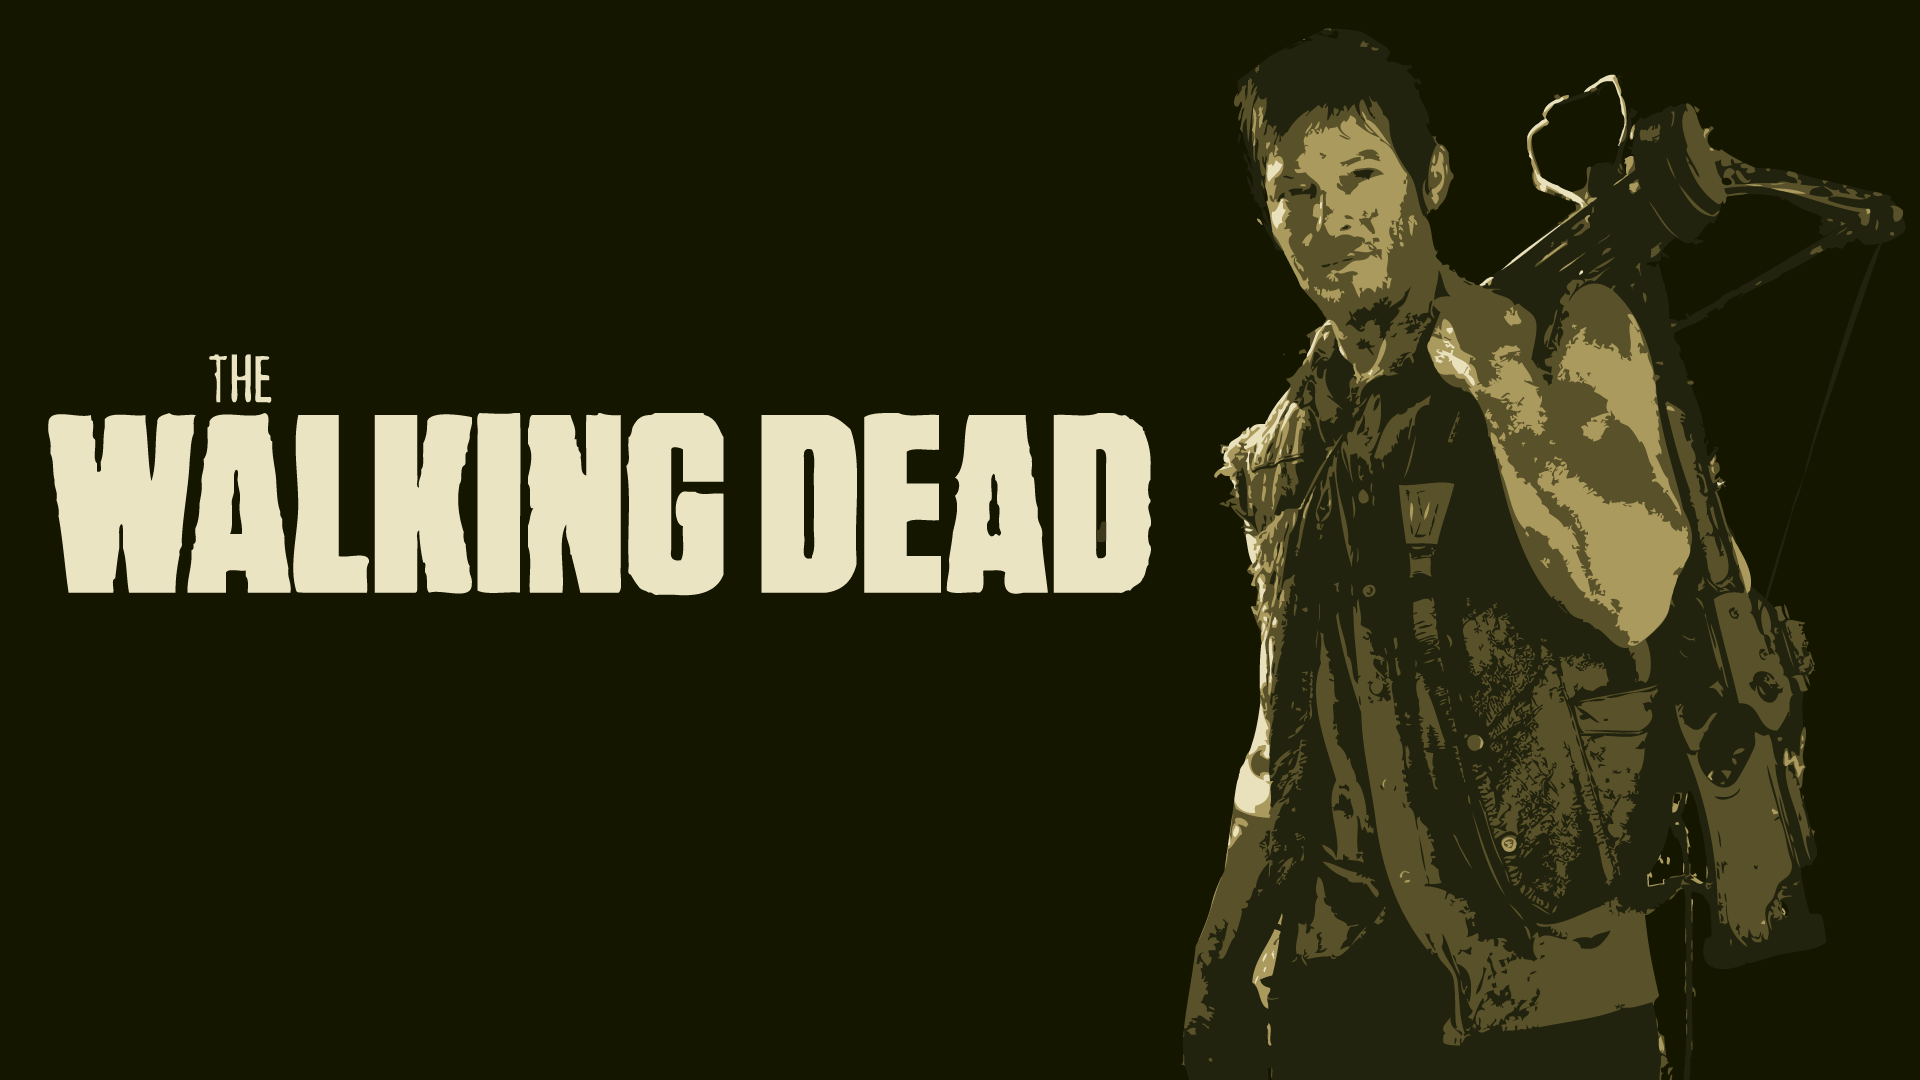 Walking Dead Wallpapers For Android: Walking Dead Wallpapers